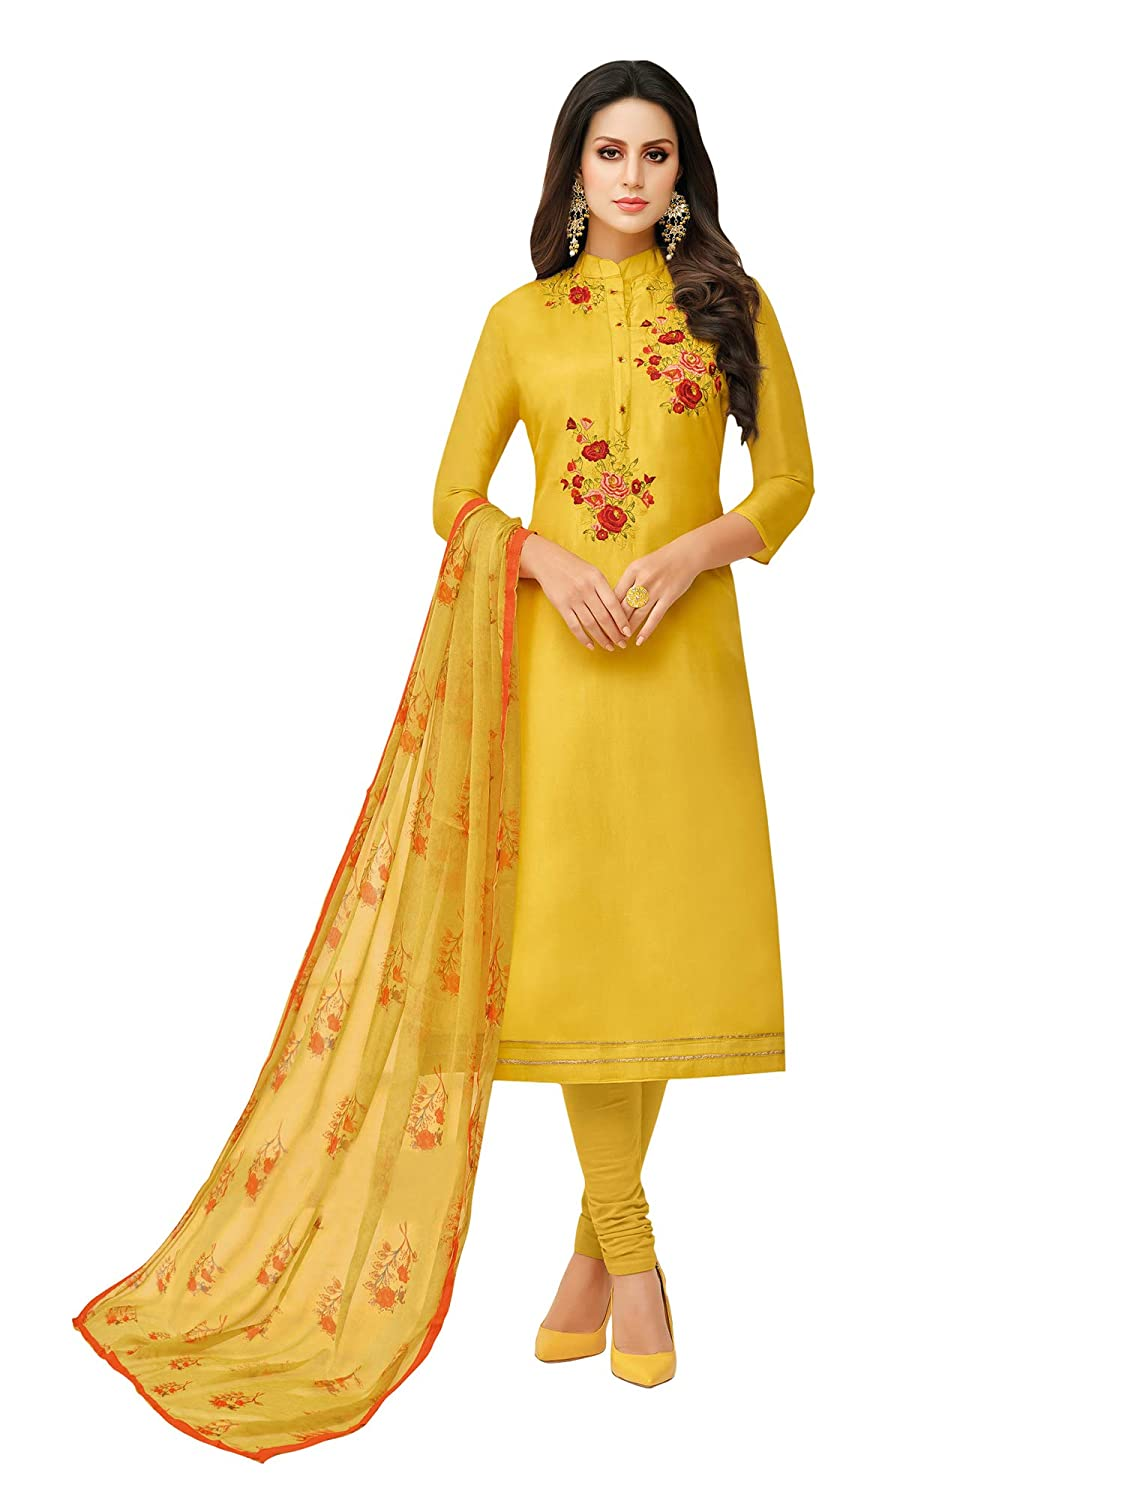 AKHILAM Women's Embroidered Chanderi Cotton Semi-Stitched Chudidar Salwar Suit Dress Material with Chiffon Dupatta (Yellow_Free Size)